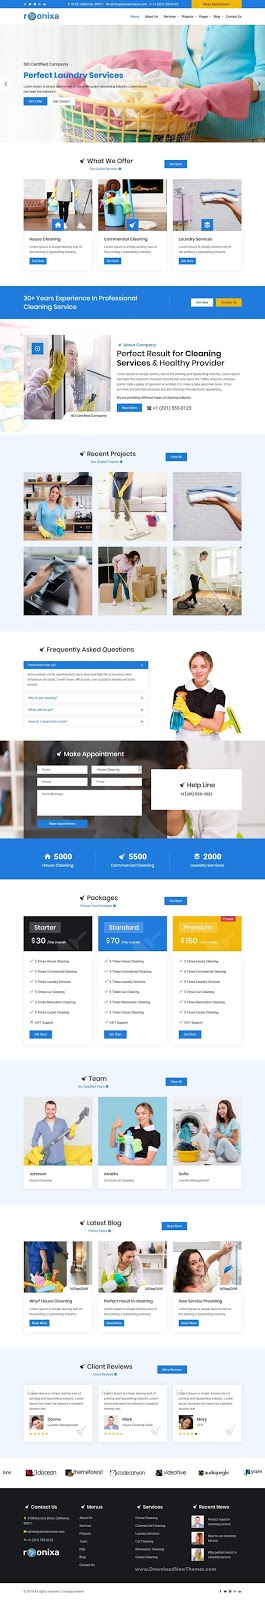 Roonixa - Cleaning Services HTML5 Template